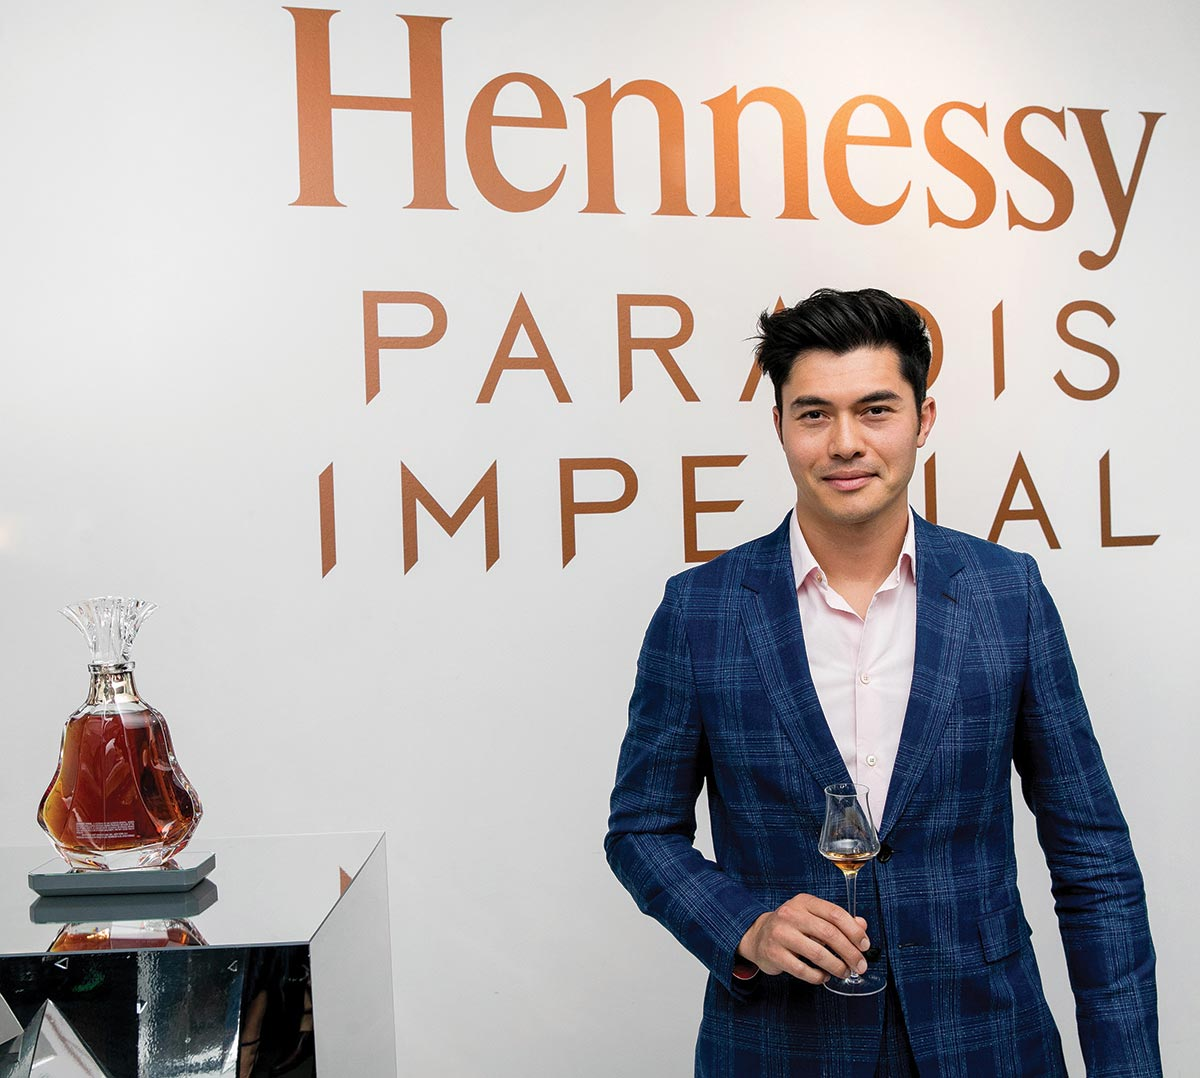 Hennessy Names Actor Golding to Cognac Collection Ambassador Role